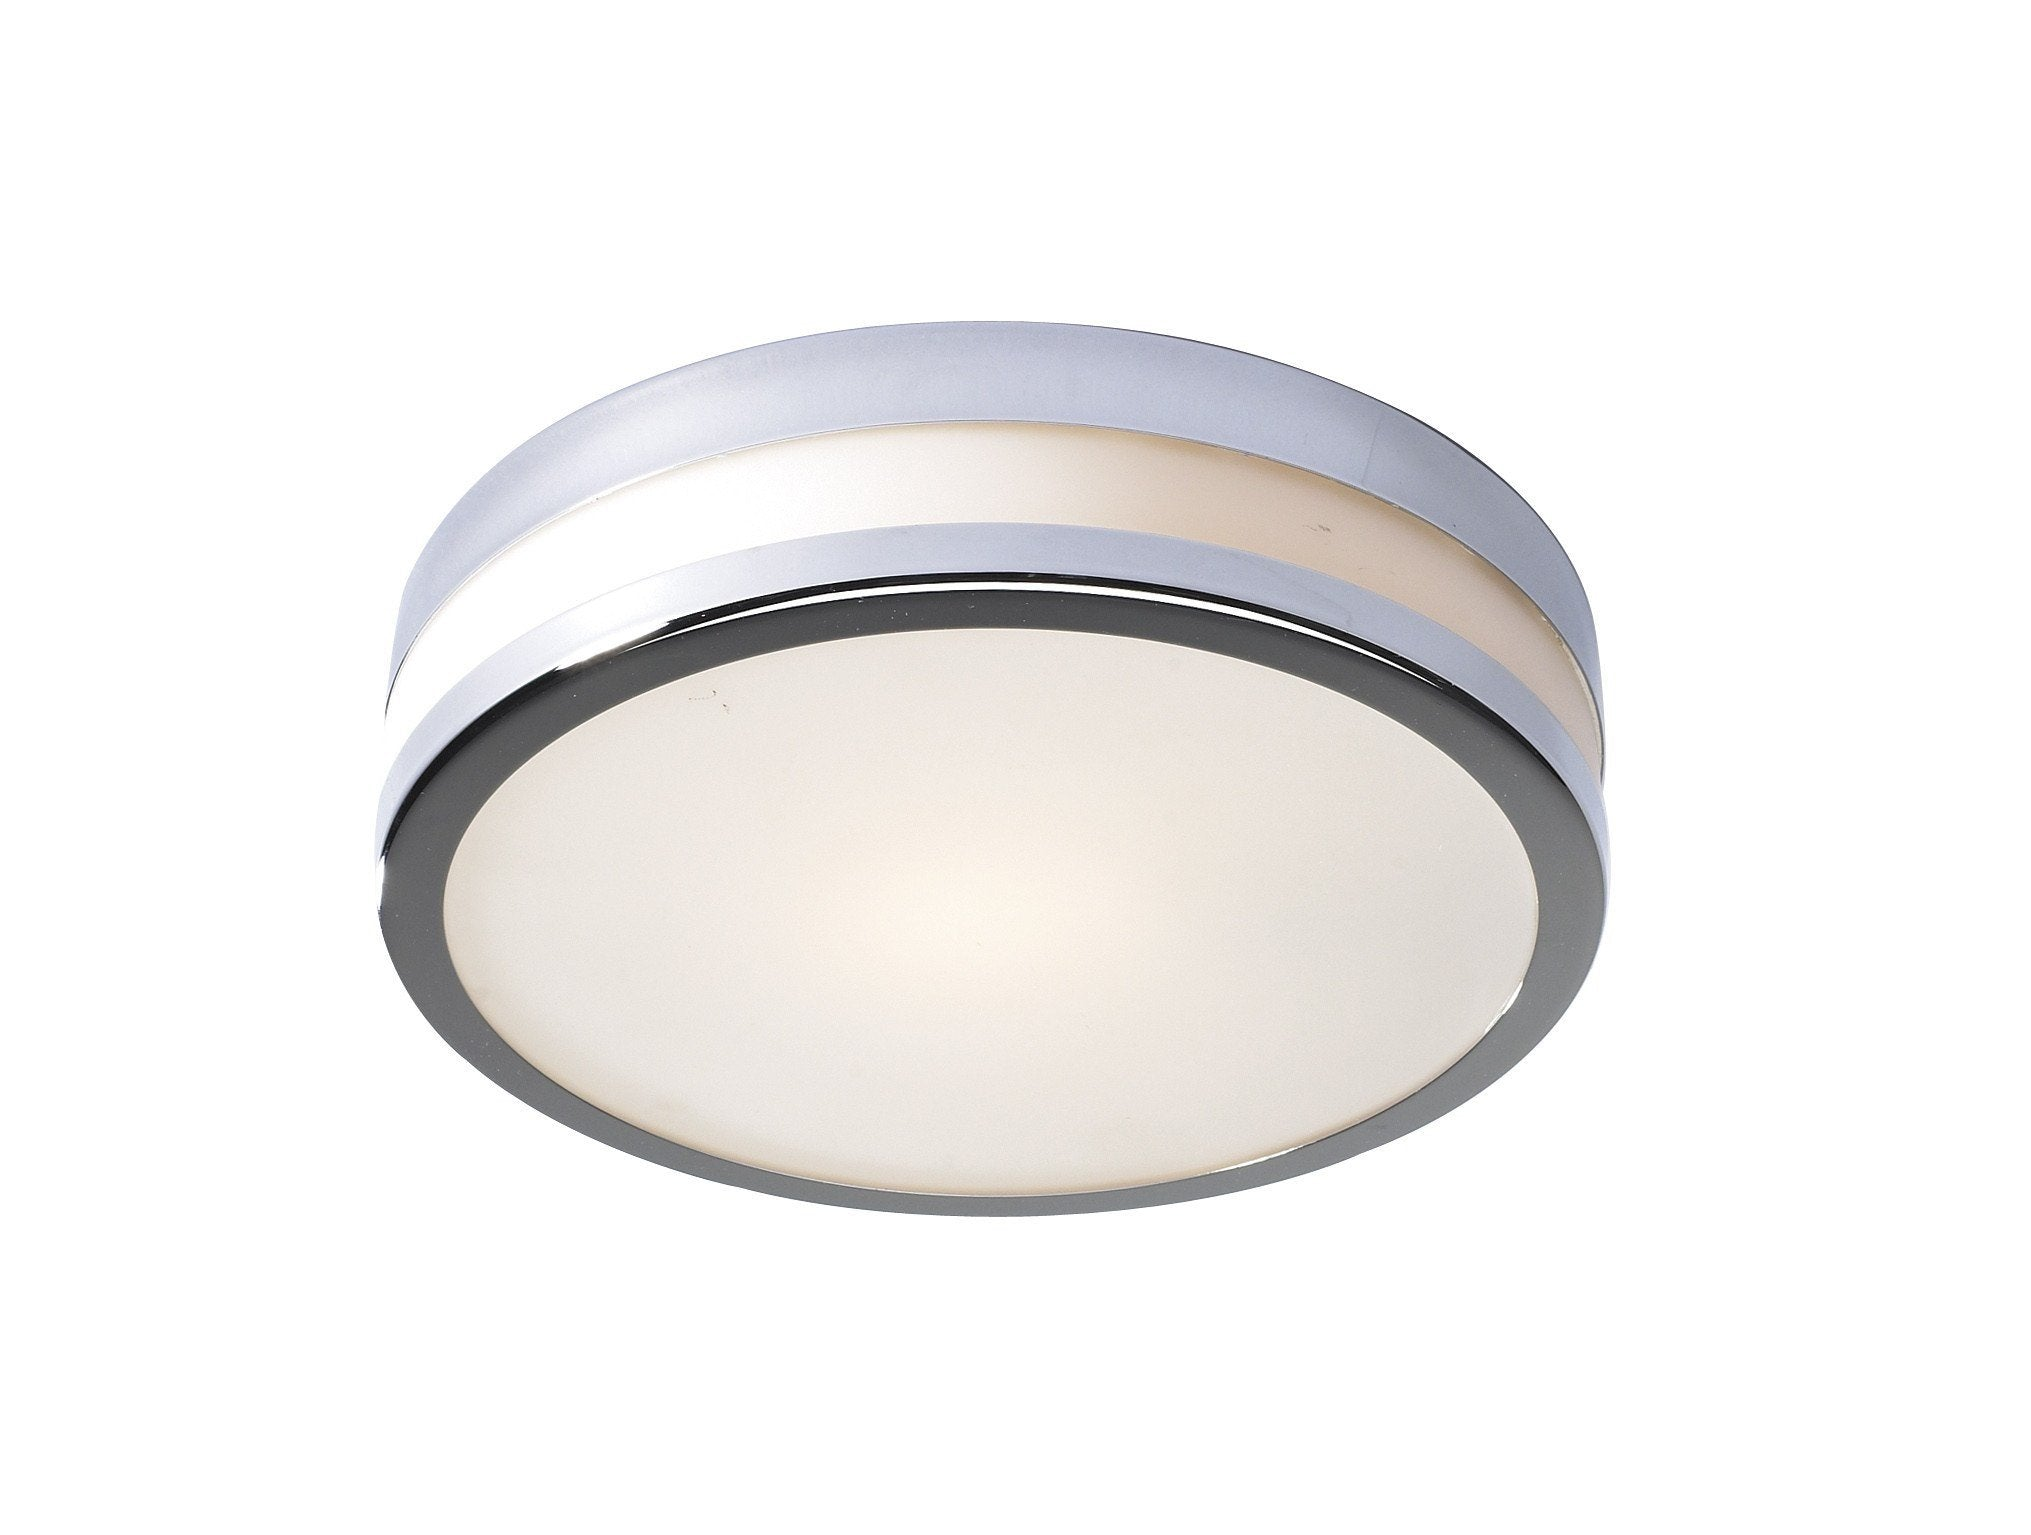 Cyro Chrome Bathroom Ceiling Light 22cm - London Lighting - 1